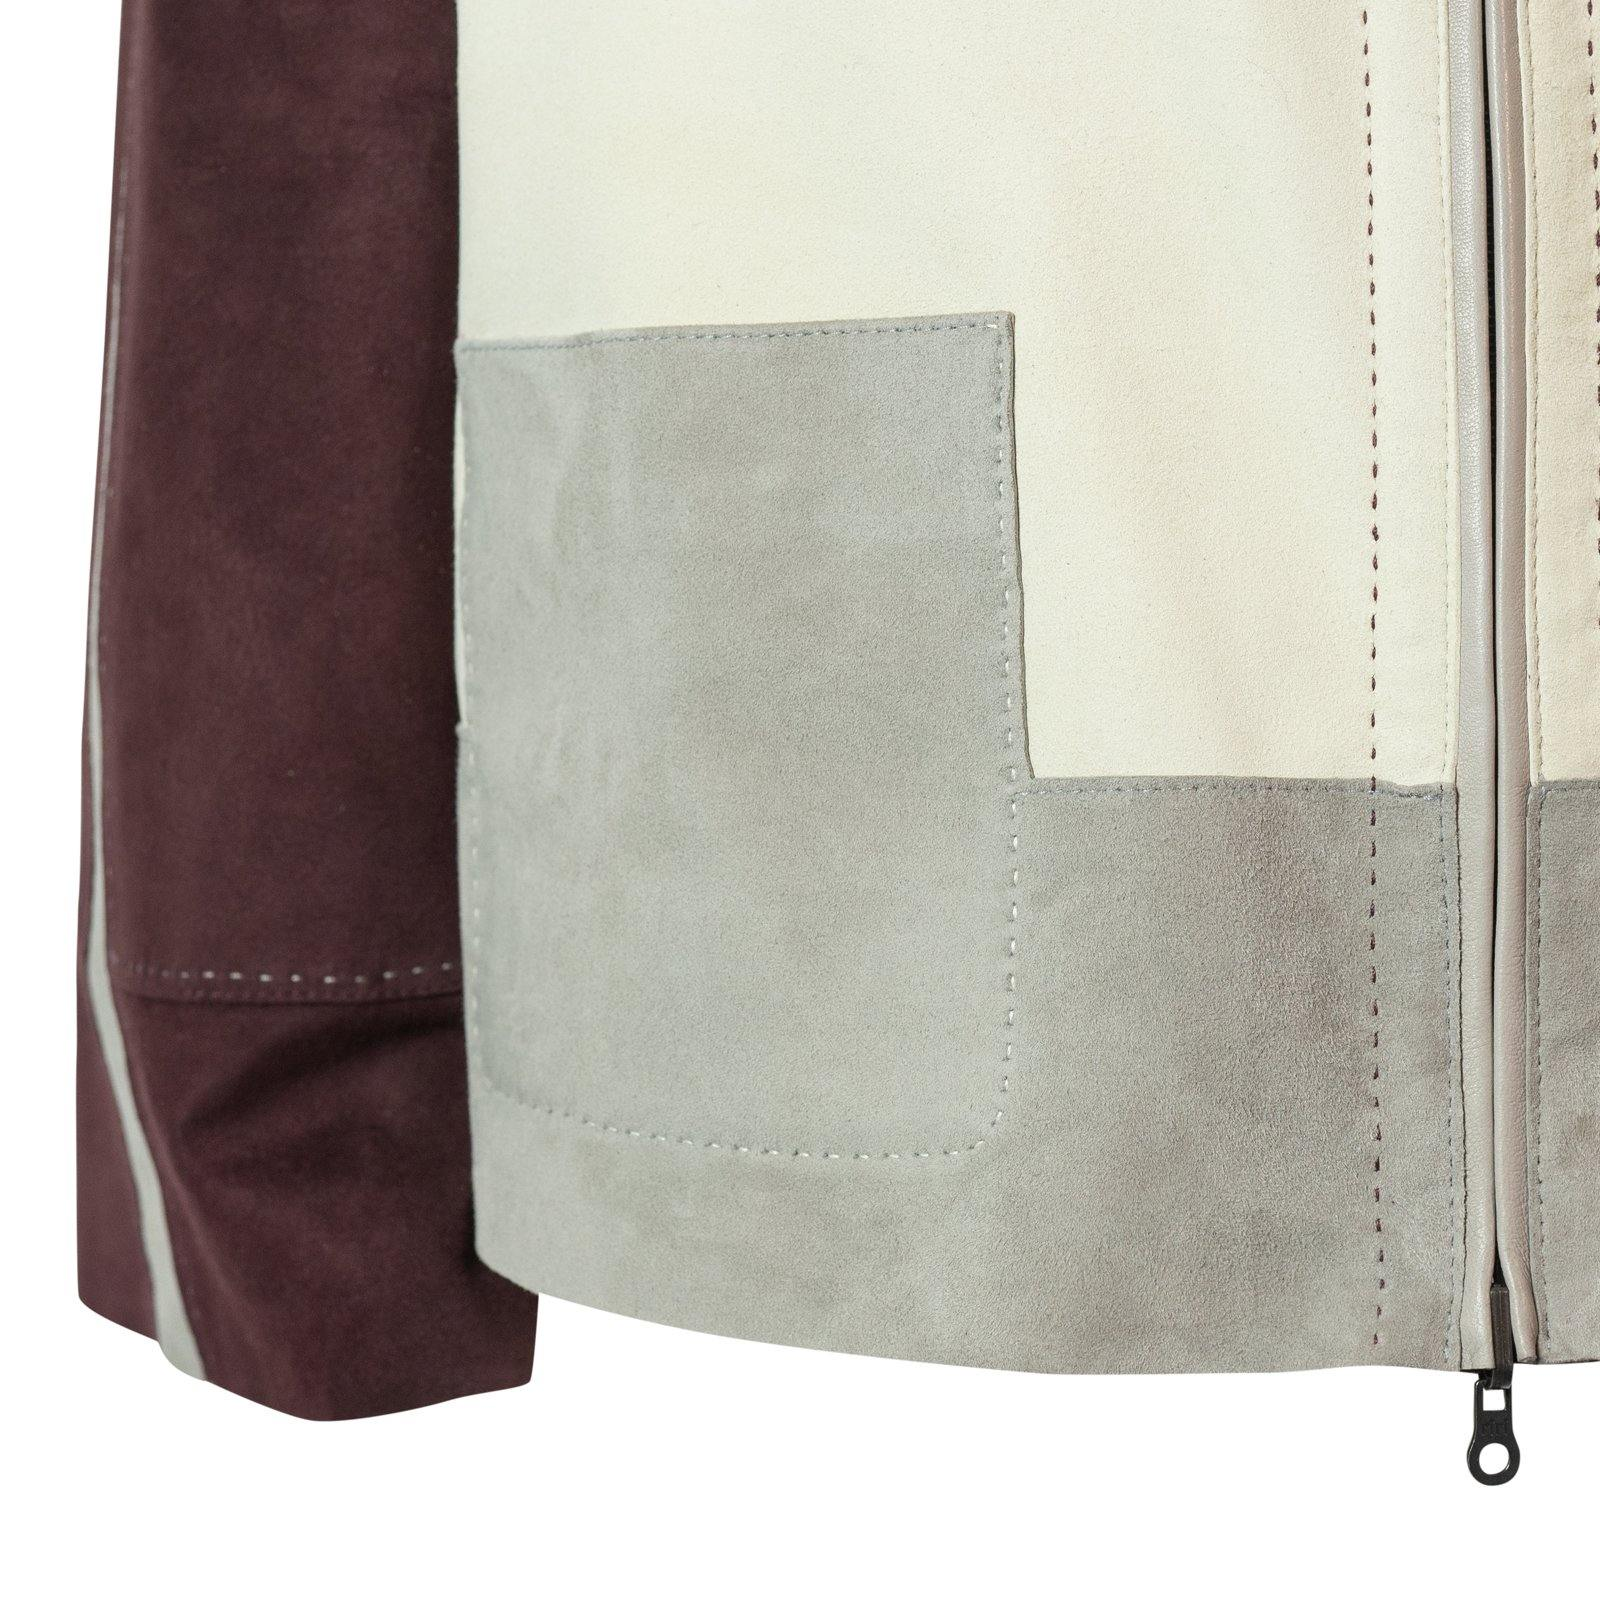 HEPBURN Reversible Leather Jacket in Bordeaux, Ivory and Taupe